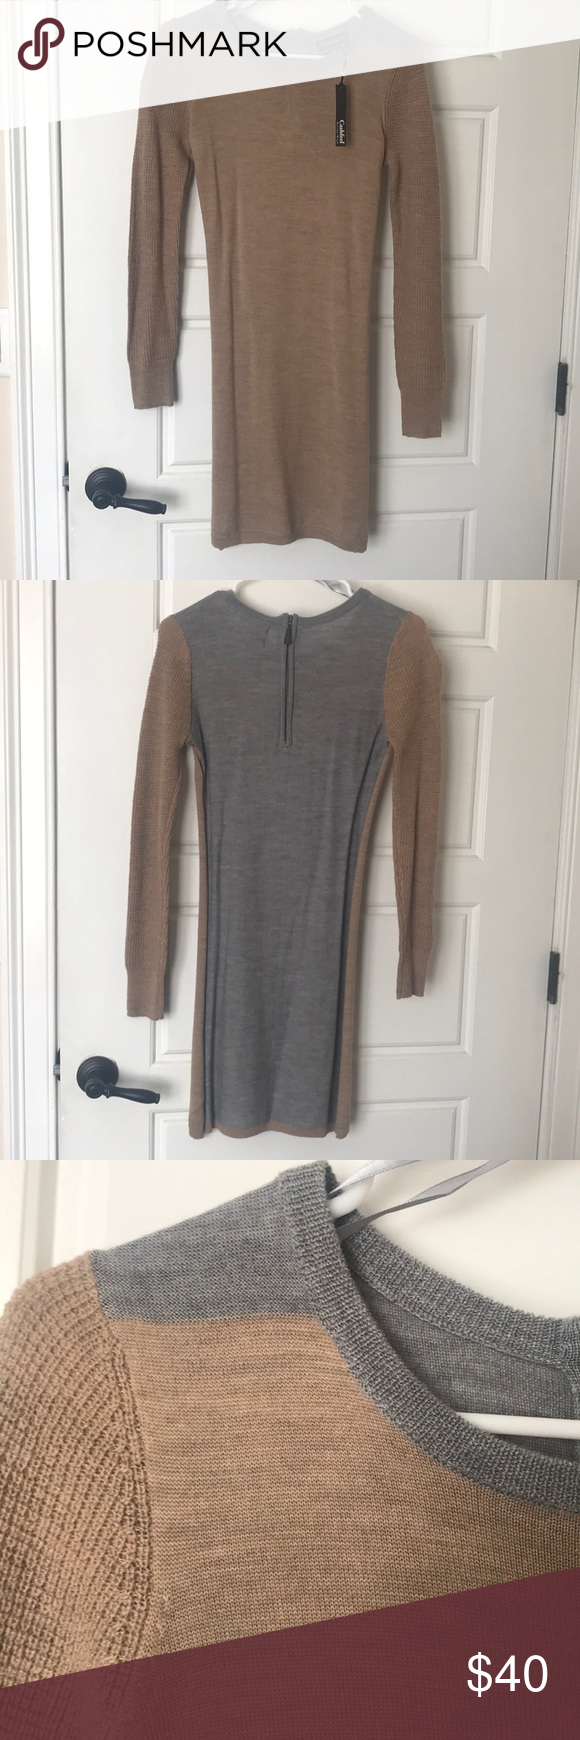 04fab617905 Tan grey sweater dress Long sleeve sweater dress. Front is tan and back is  grey. Brand new with tags never worn Cynthia Rowley Dresses Long Sleeve